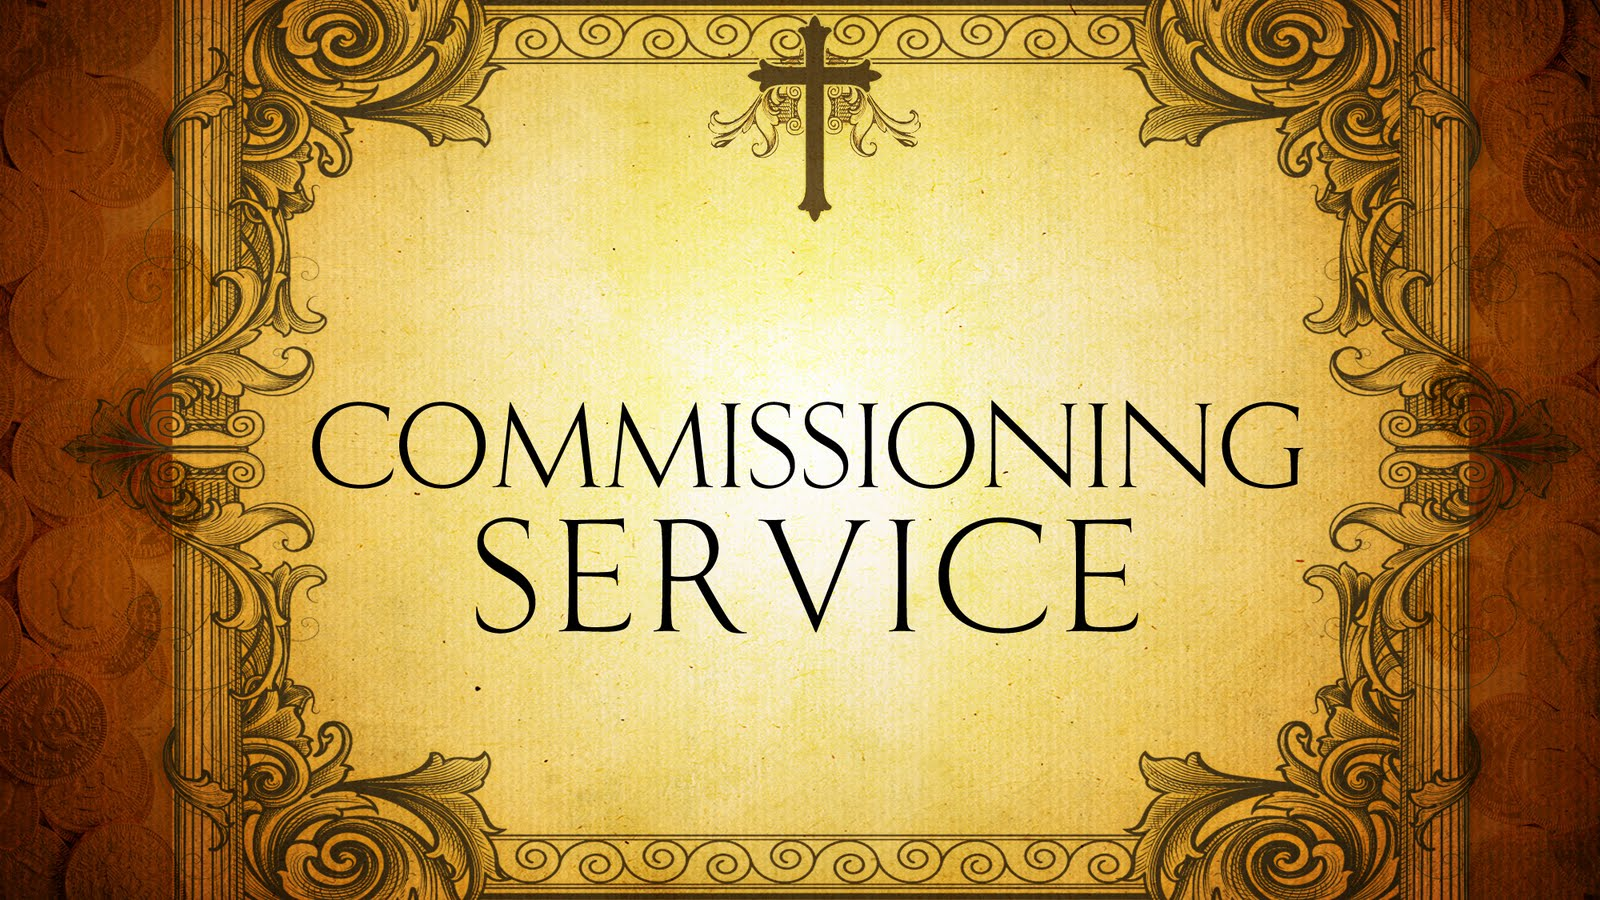 commissioning-service_wide_t